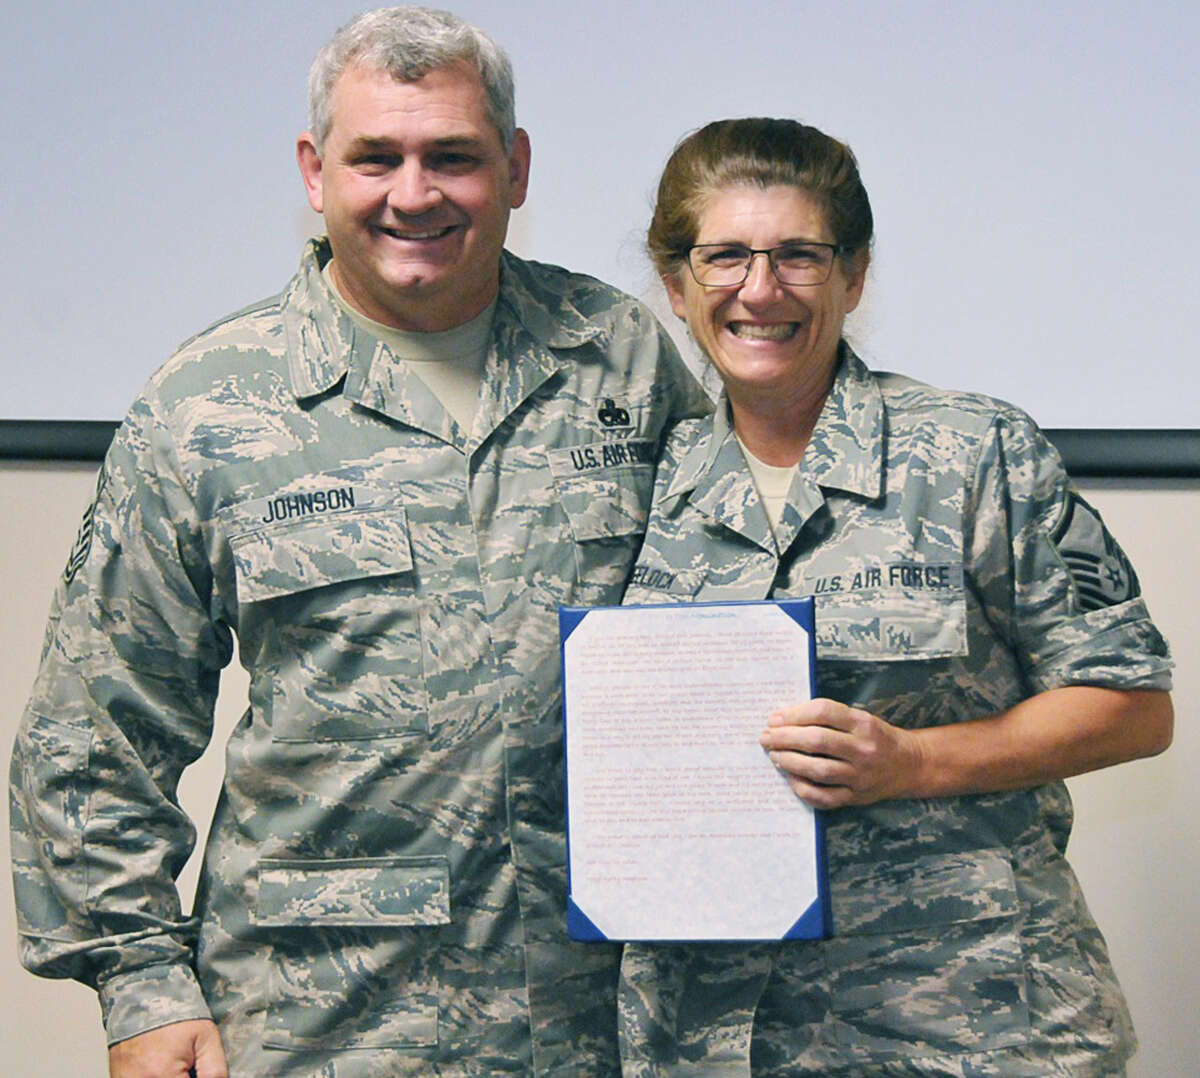 Senior Master Sergeant Eric Johnson, a New Milford native, gladly poses for a keepsake photo with Master Sergeant Kathy Wheelock, who holds a tribute letter she wrote about her United States Air Force boss. Johnson is expected to retire in 2017 after 38 years in service to his country. April 2015